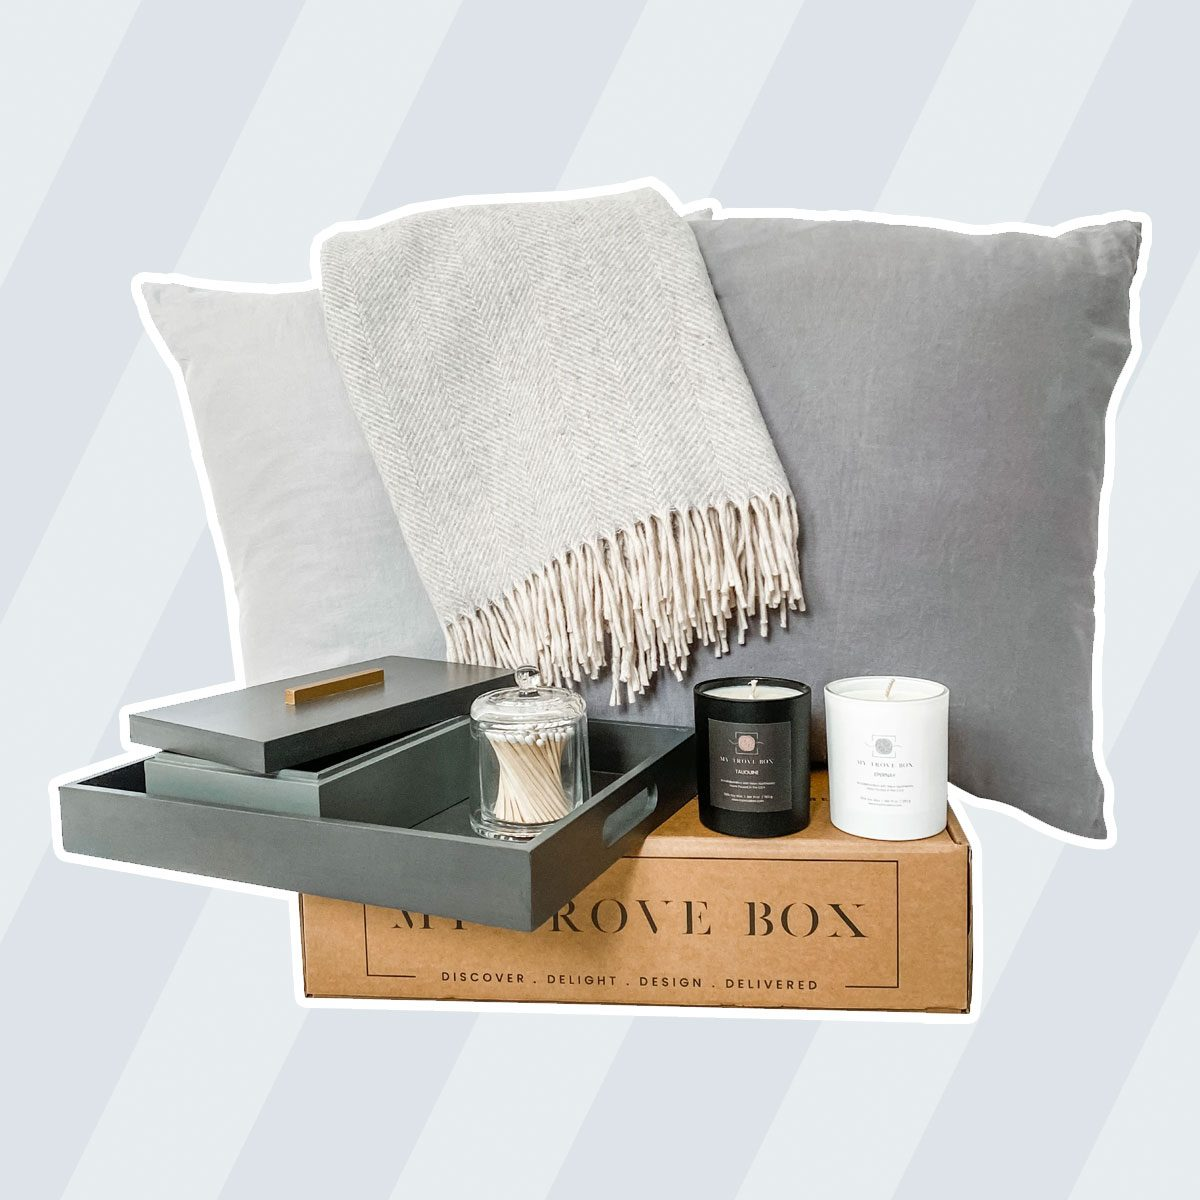 My Trove Box home decor subscription box